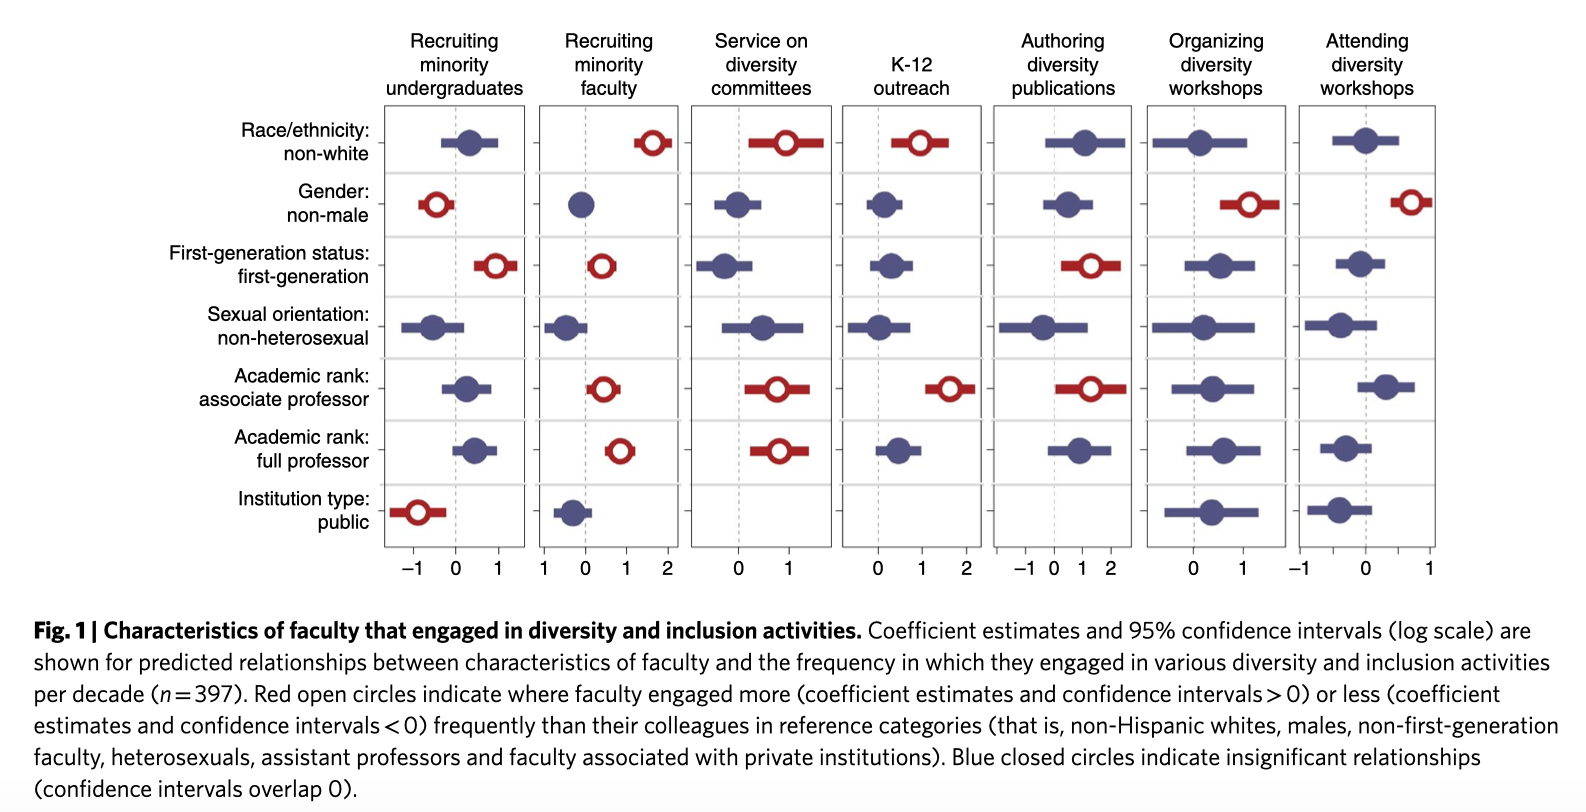 Who's doing the heavy lifting in terms of diversity and inclusion work?